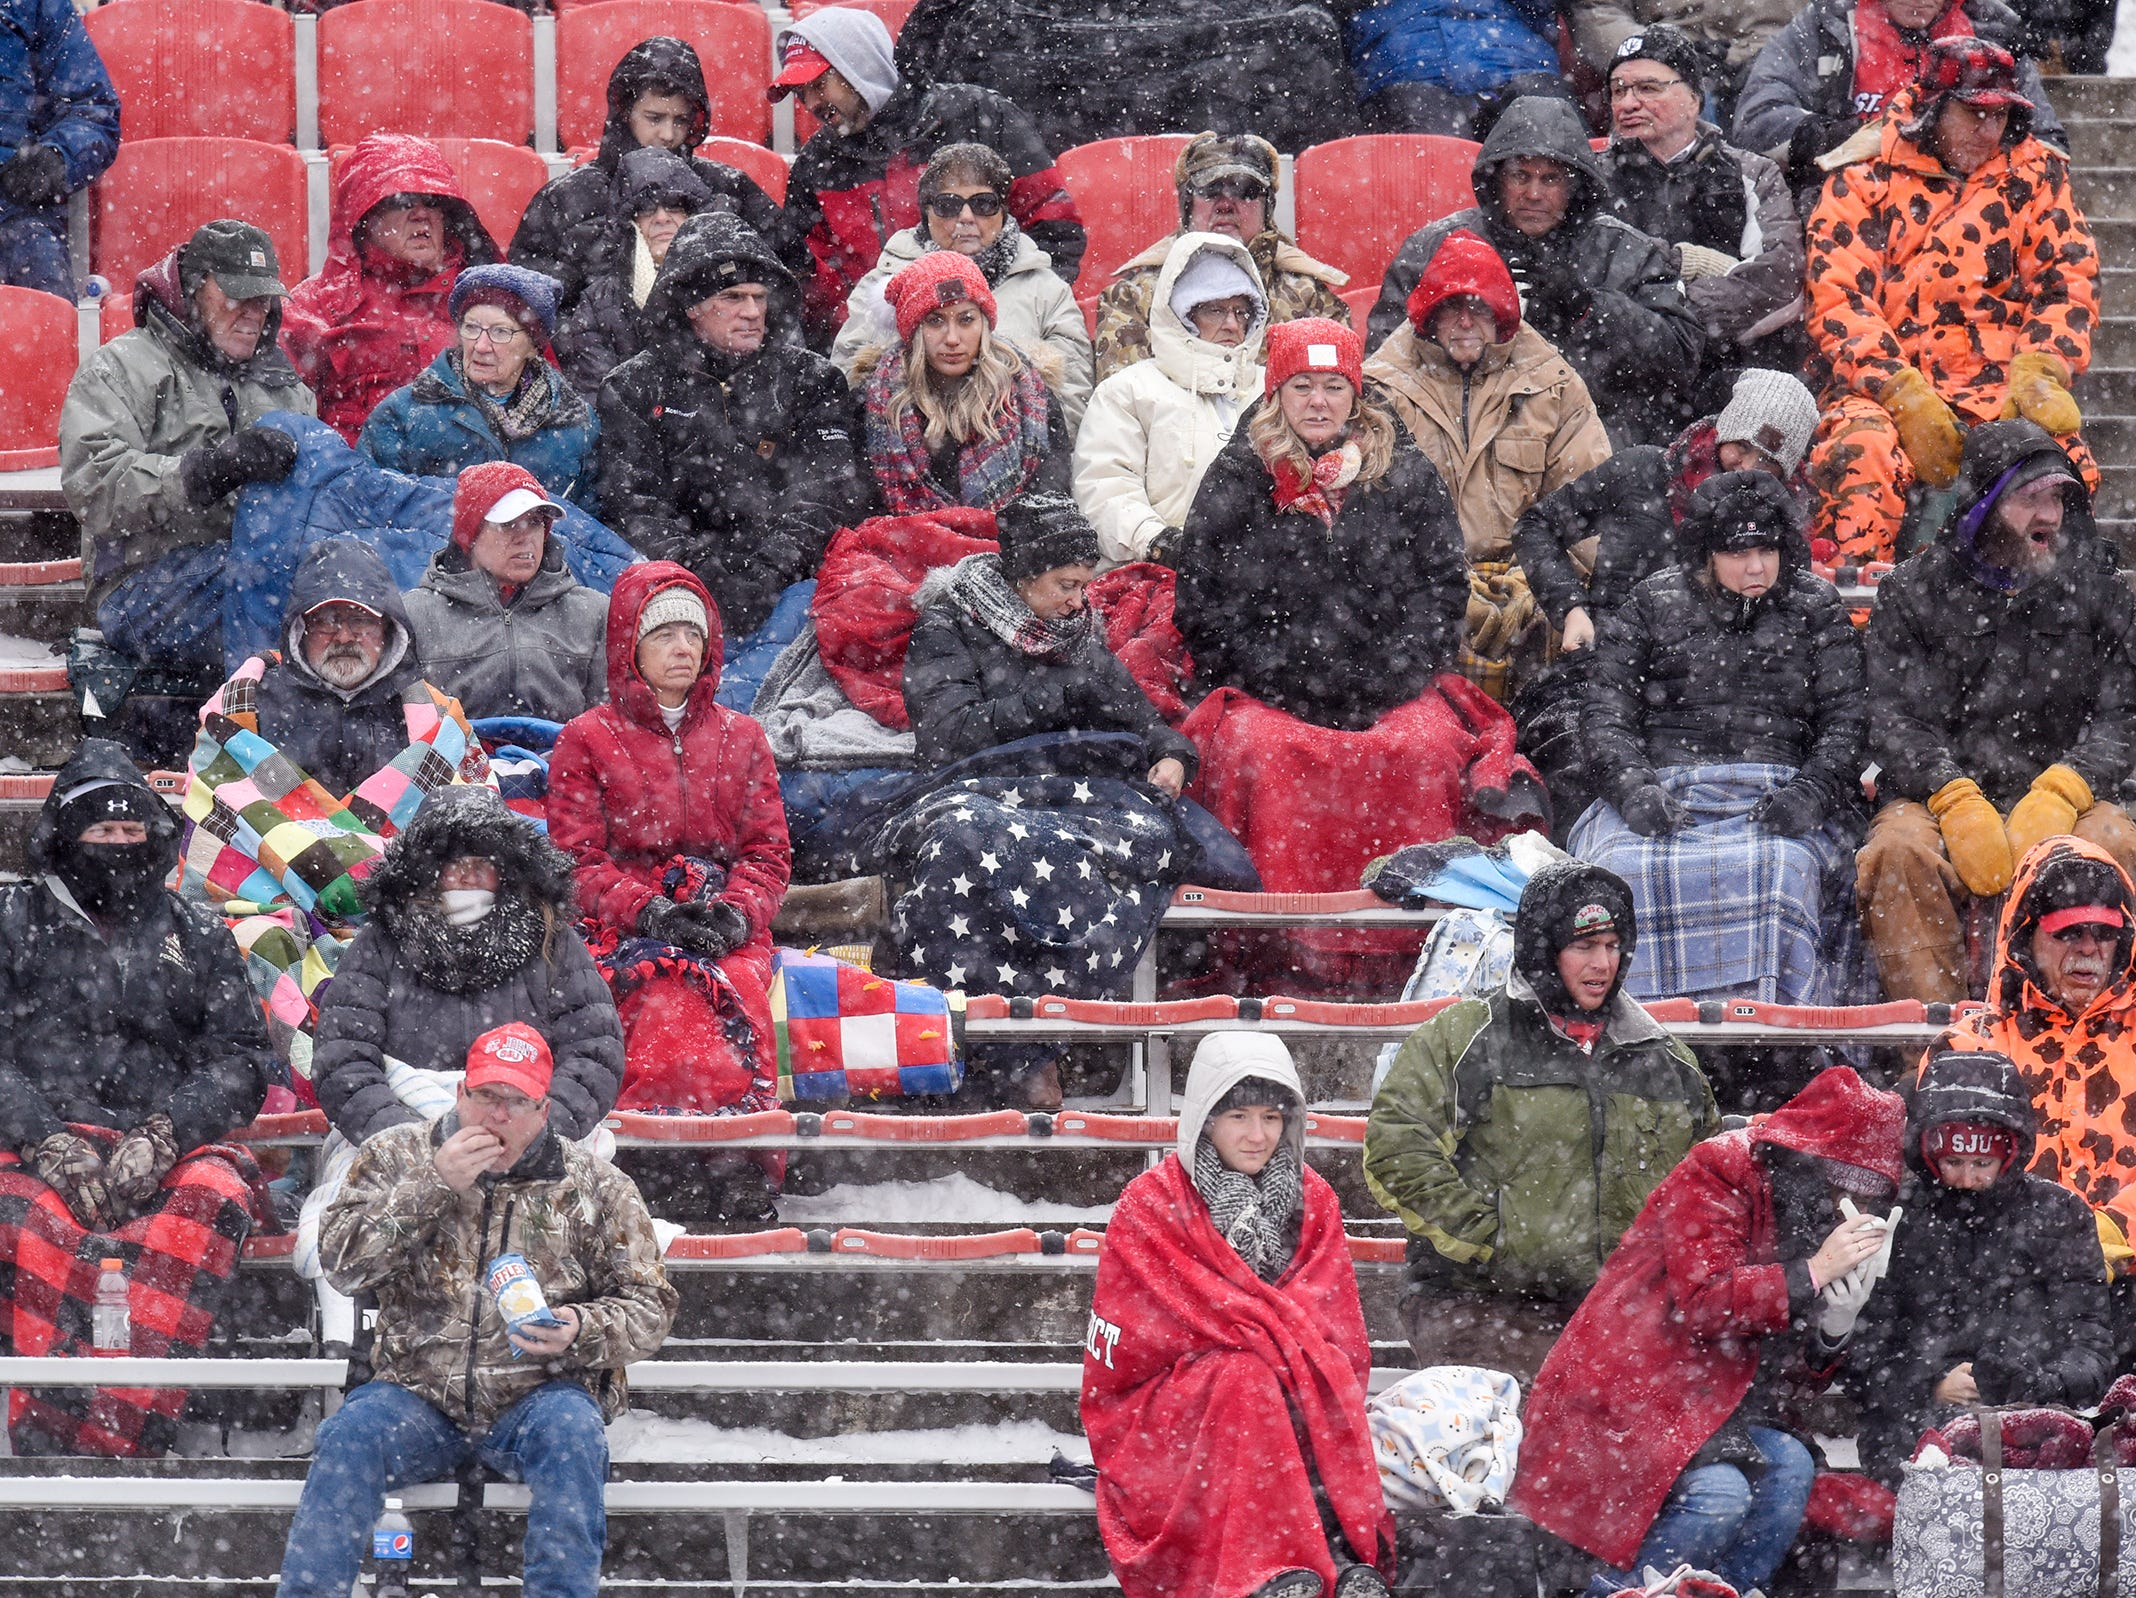 Heavy snow falls during the first half of the Saturday, Nov. 10, game against Thomas More University at Clemens Stadium in Collegeville.